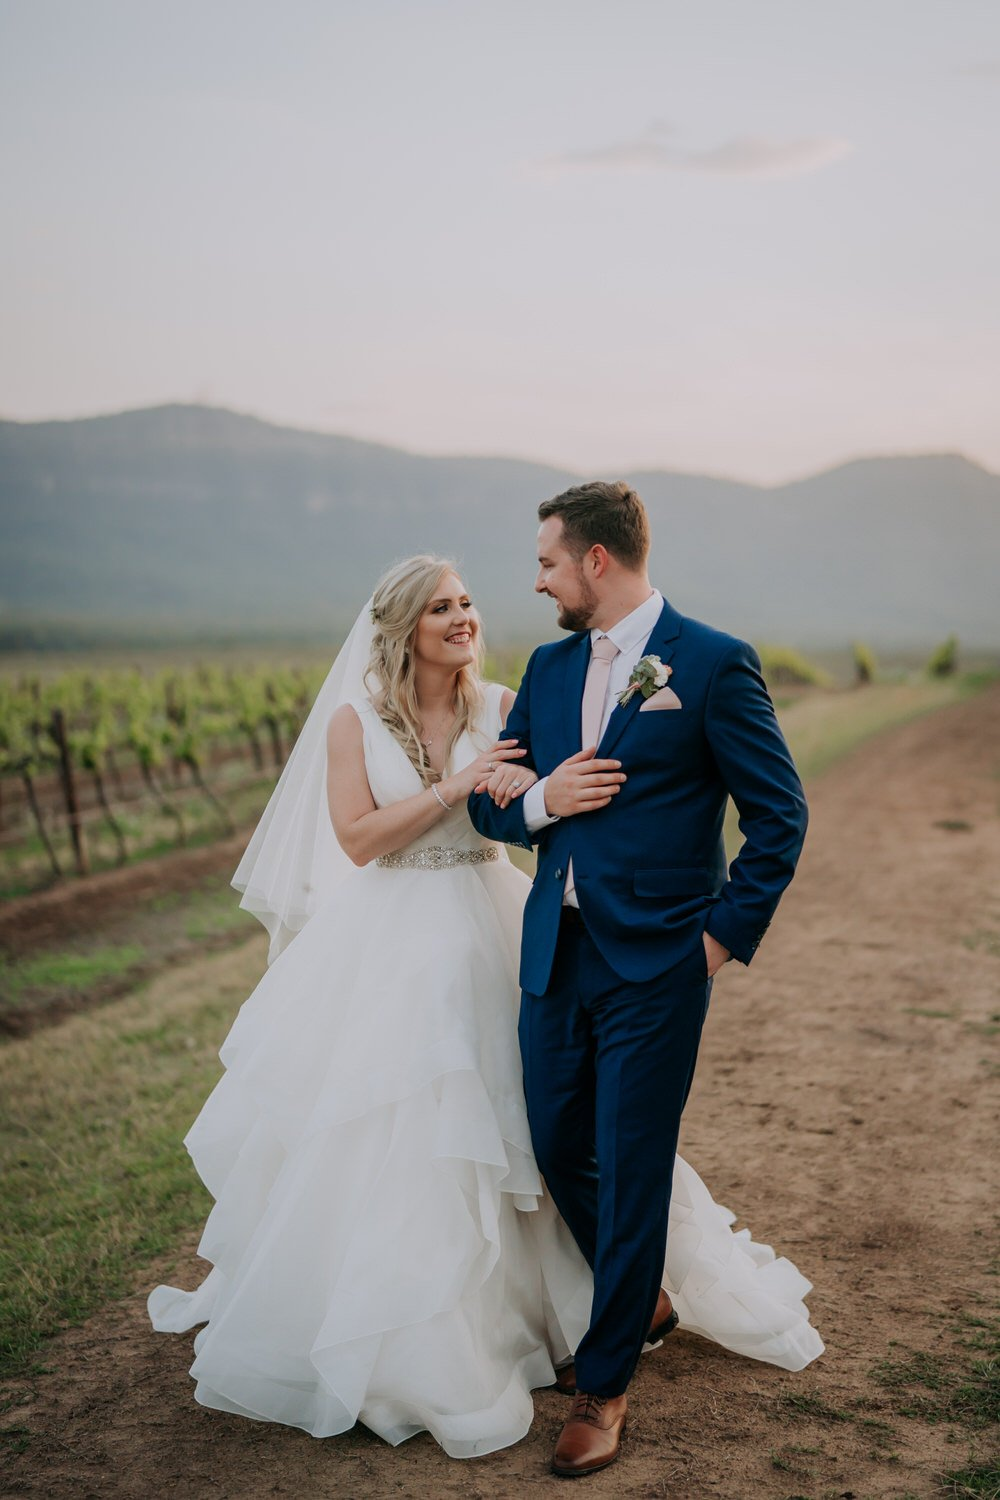 ava-me-photography-chantel-andreas-enzo-hunter-valley-ironbark-hill-vineyard-wedding-719-2